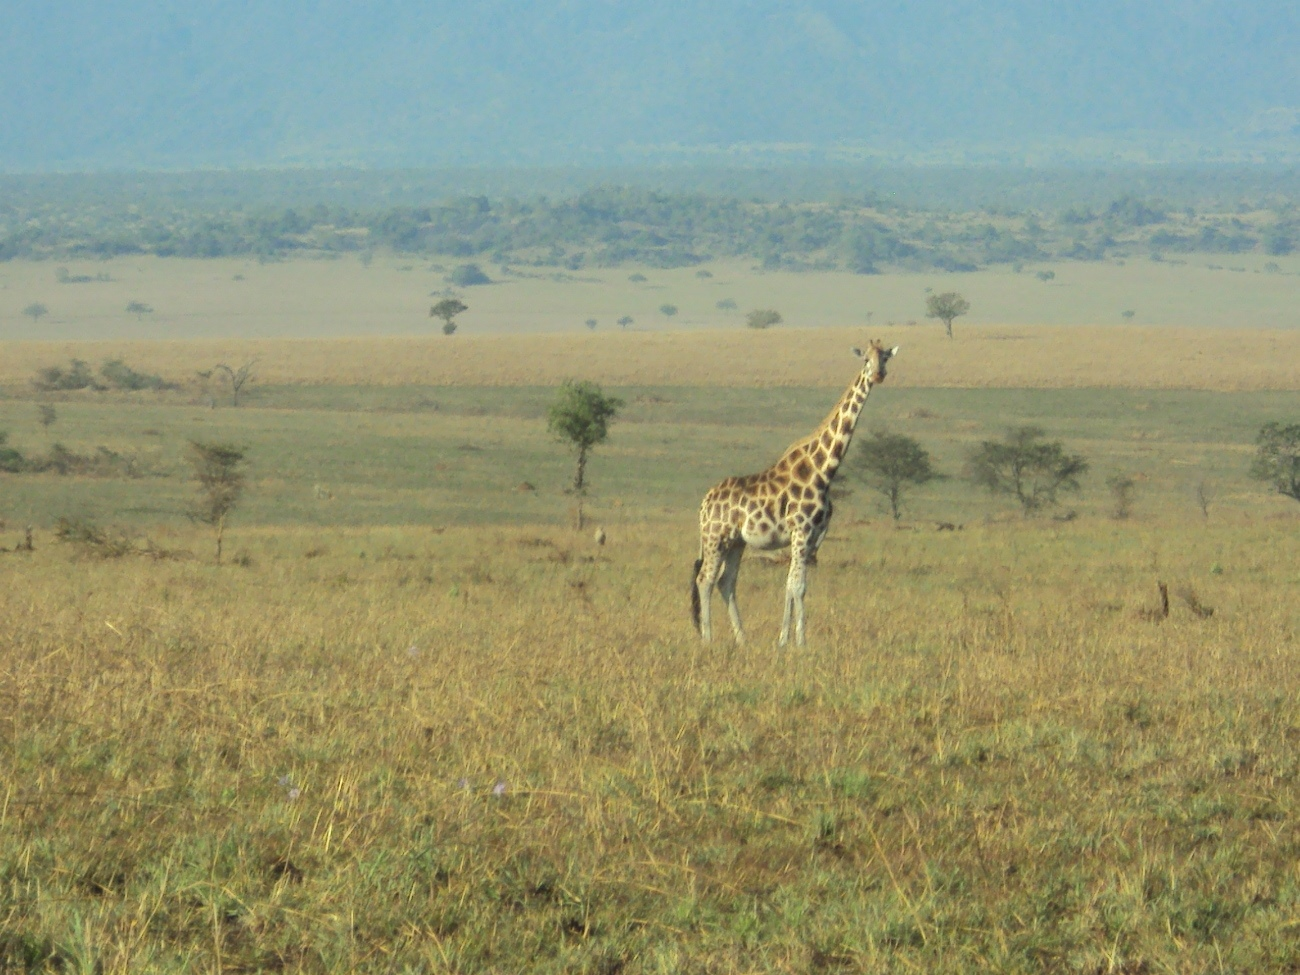 2. A Giraffe stands high in Kidepo National park, this is one of the rare tourist attractions here. PHOTO BY DAVID MAFABI